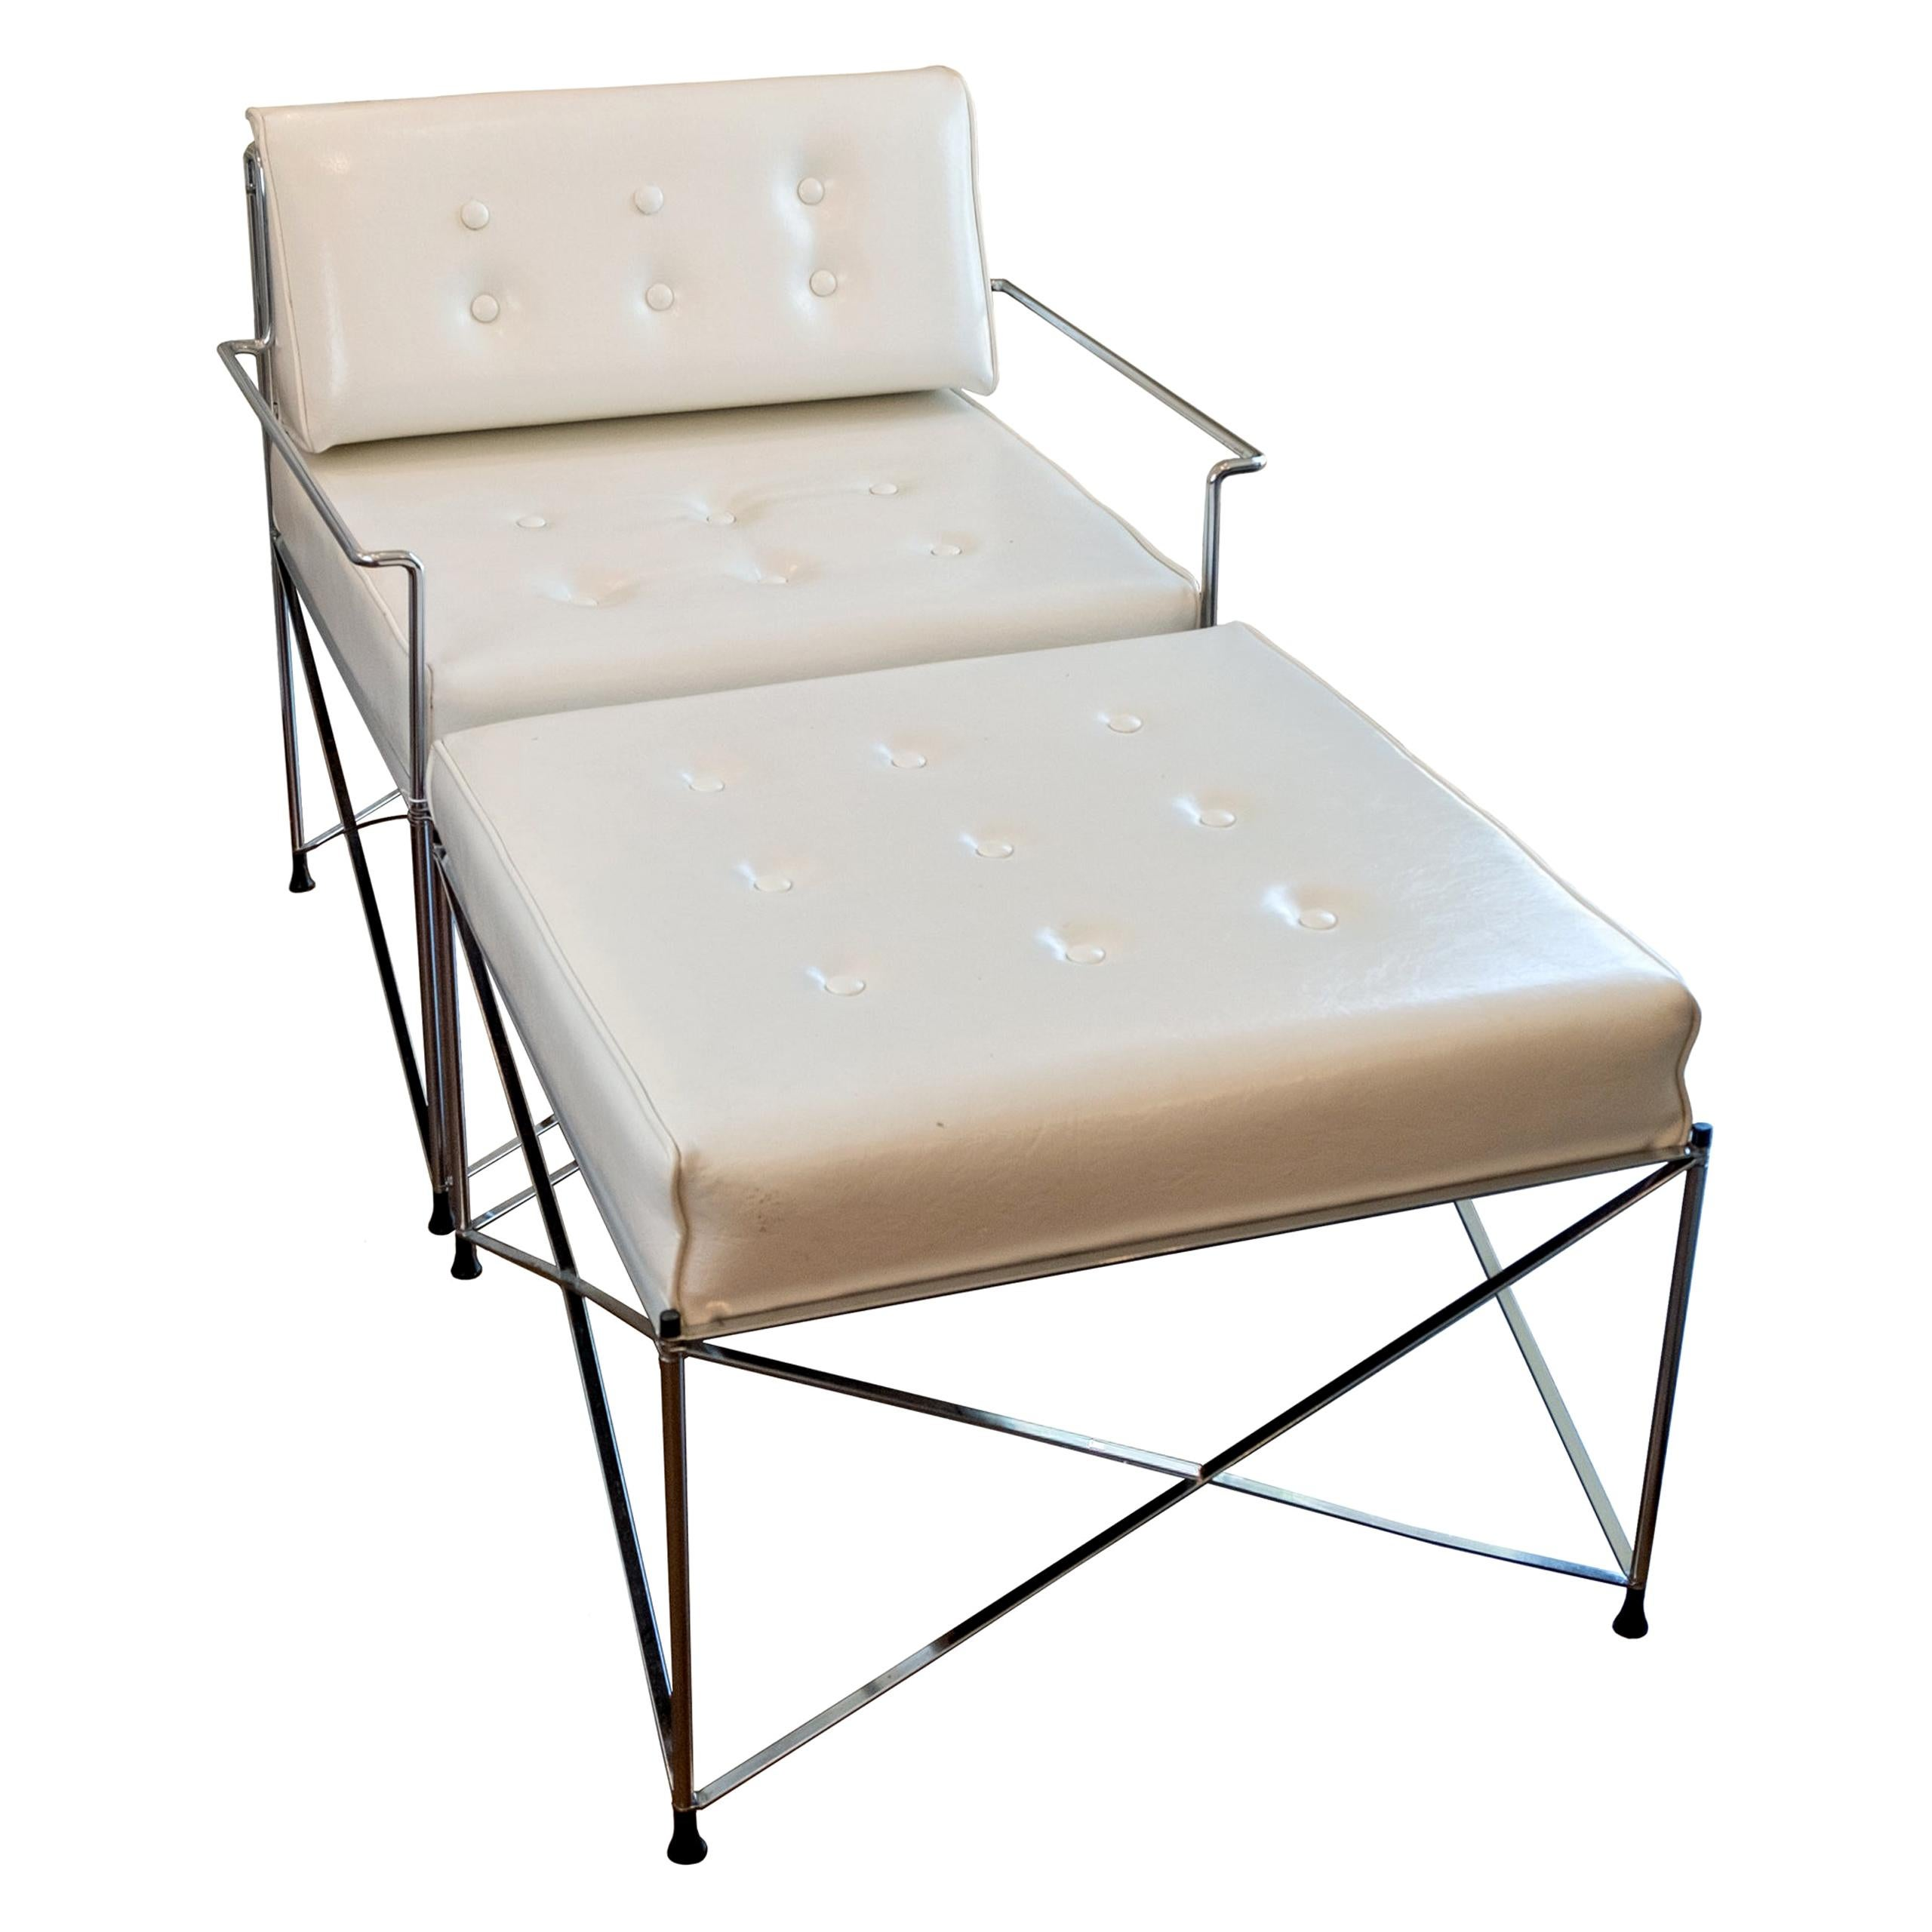 Mid-Century Modern White Vinyl and Chrome Chair with Ottoman